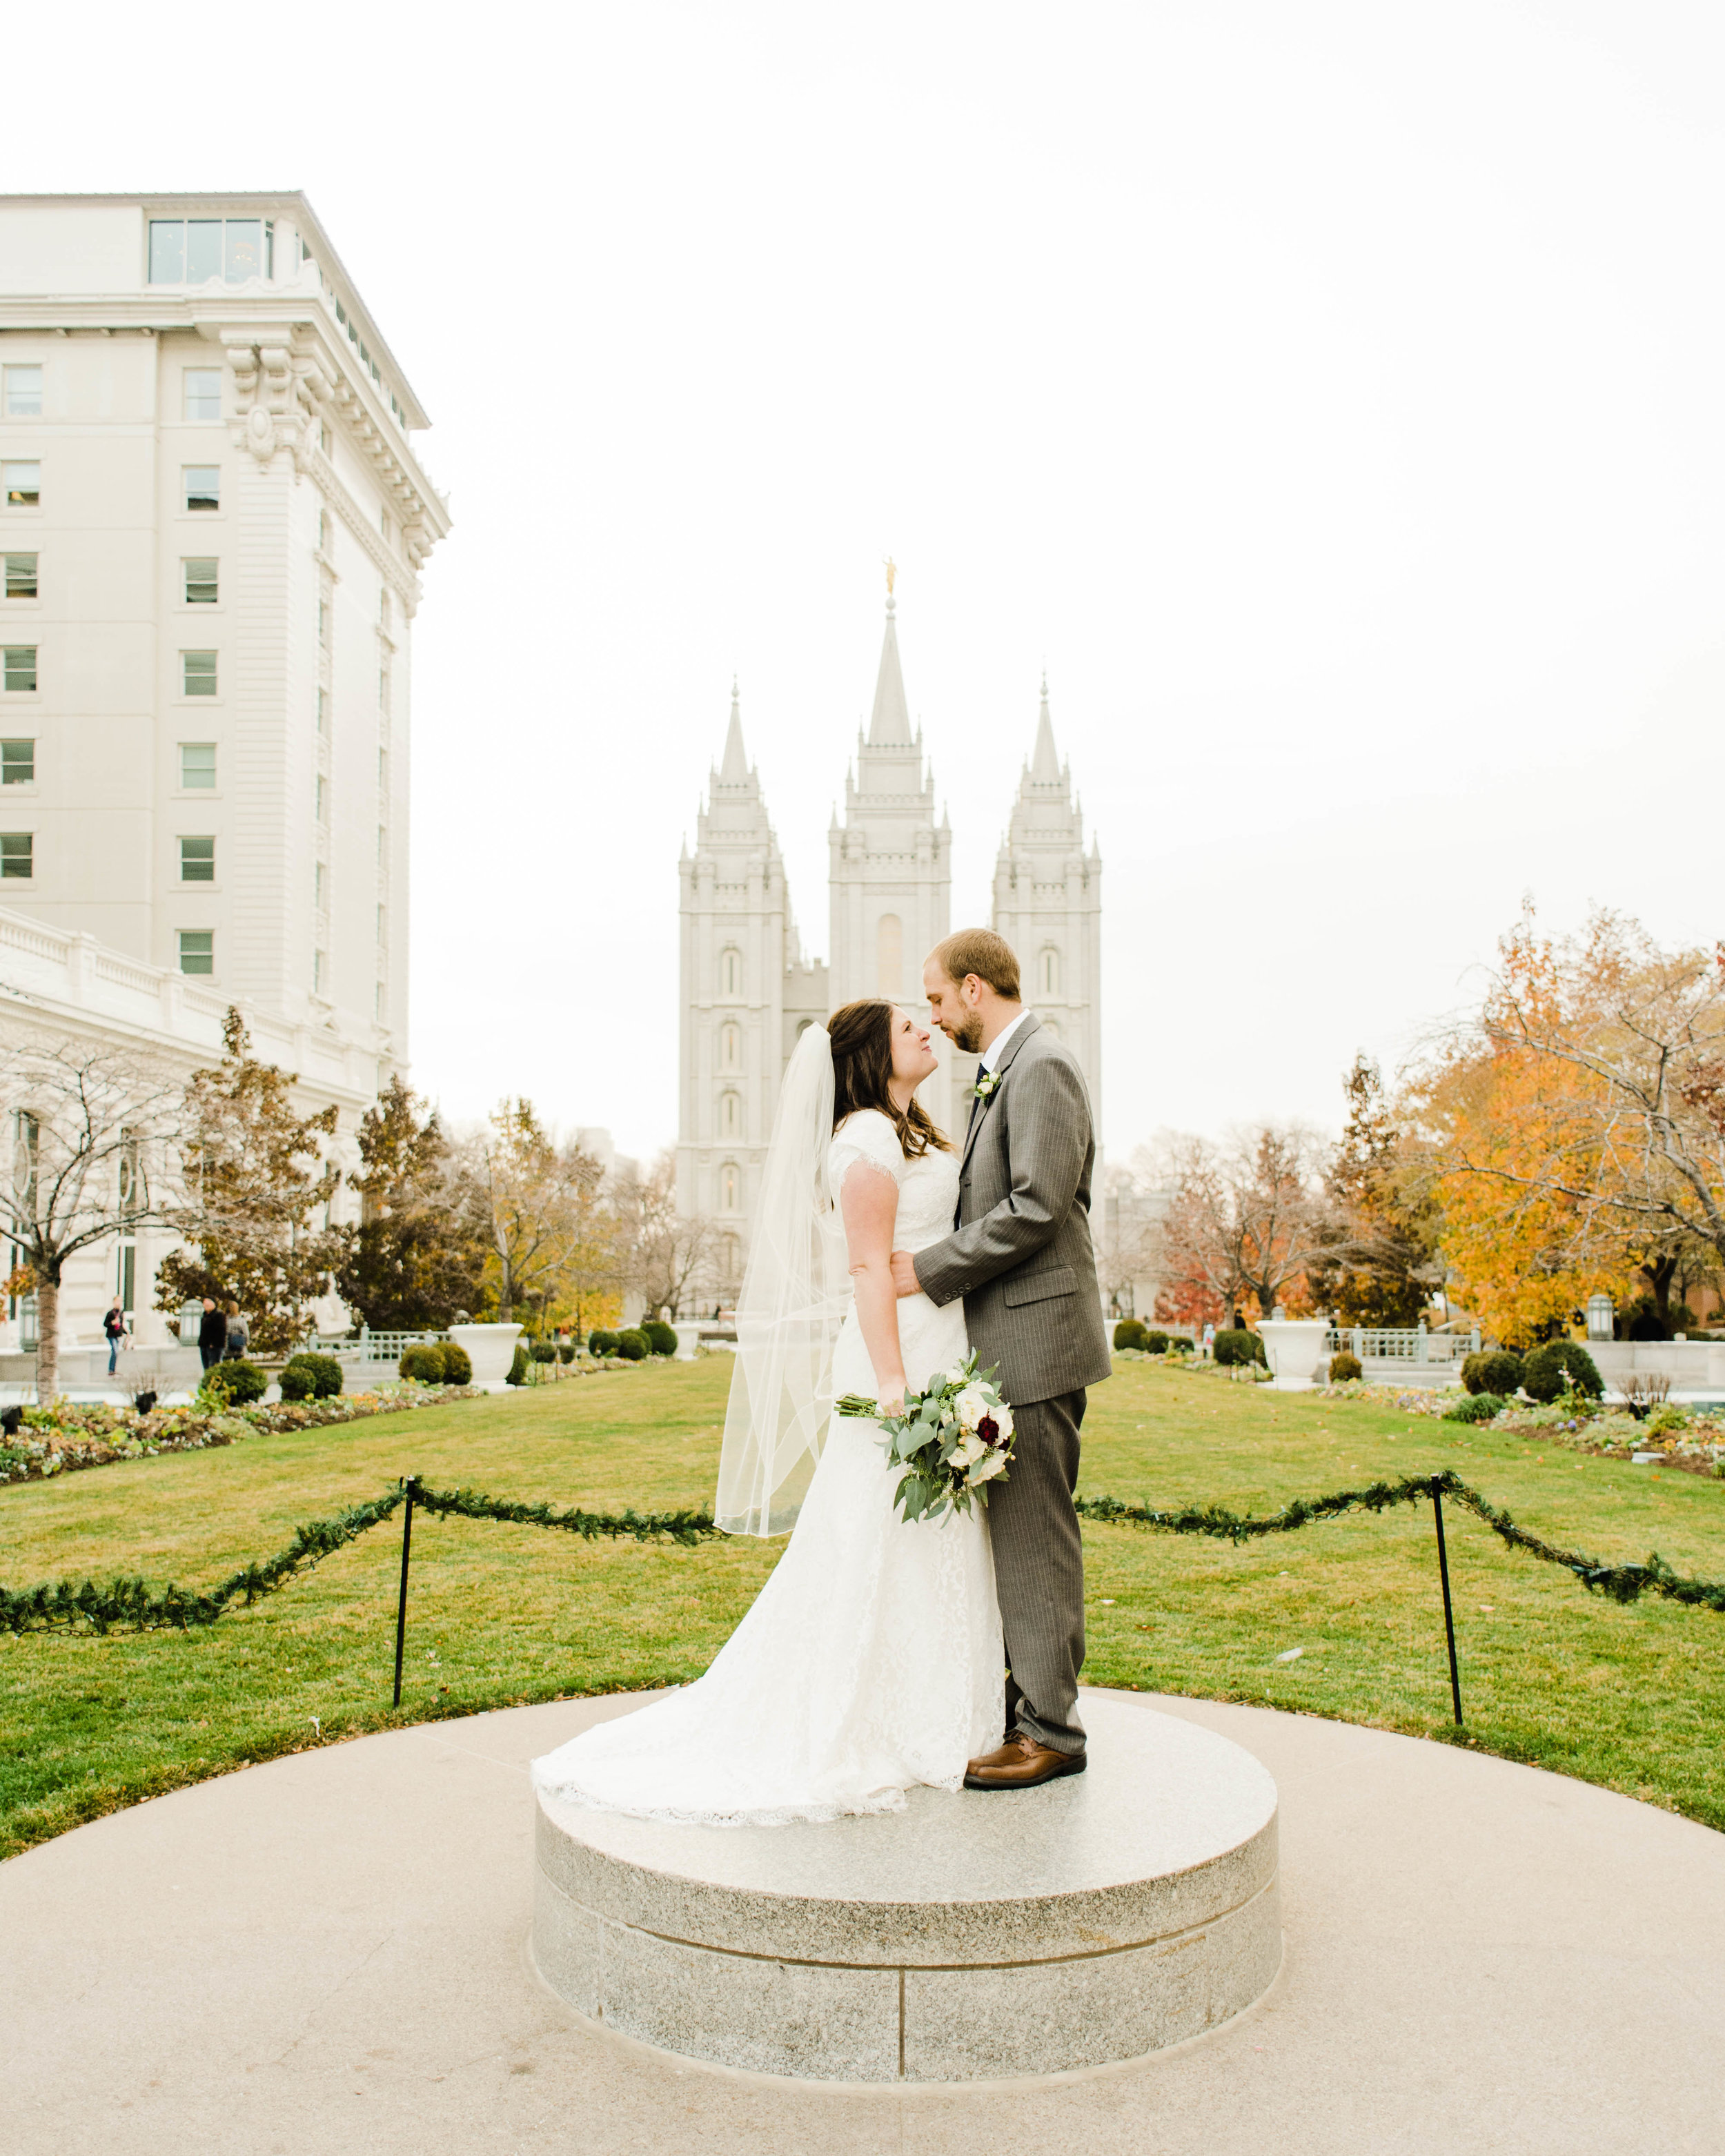 LINDSAY+BRAD-BRIDALS-Sadie_Banks_Photography-139.jpg